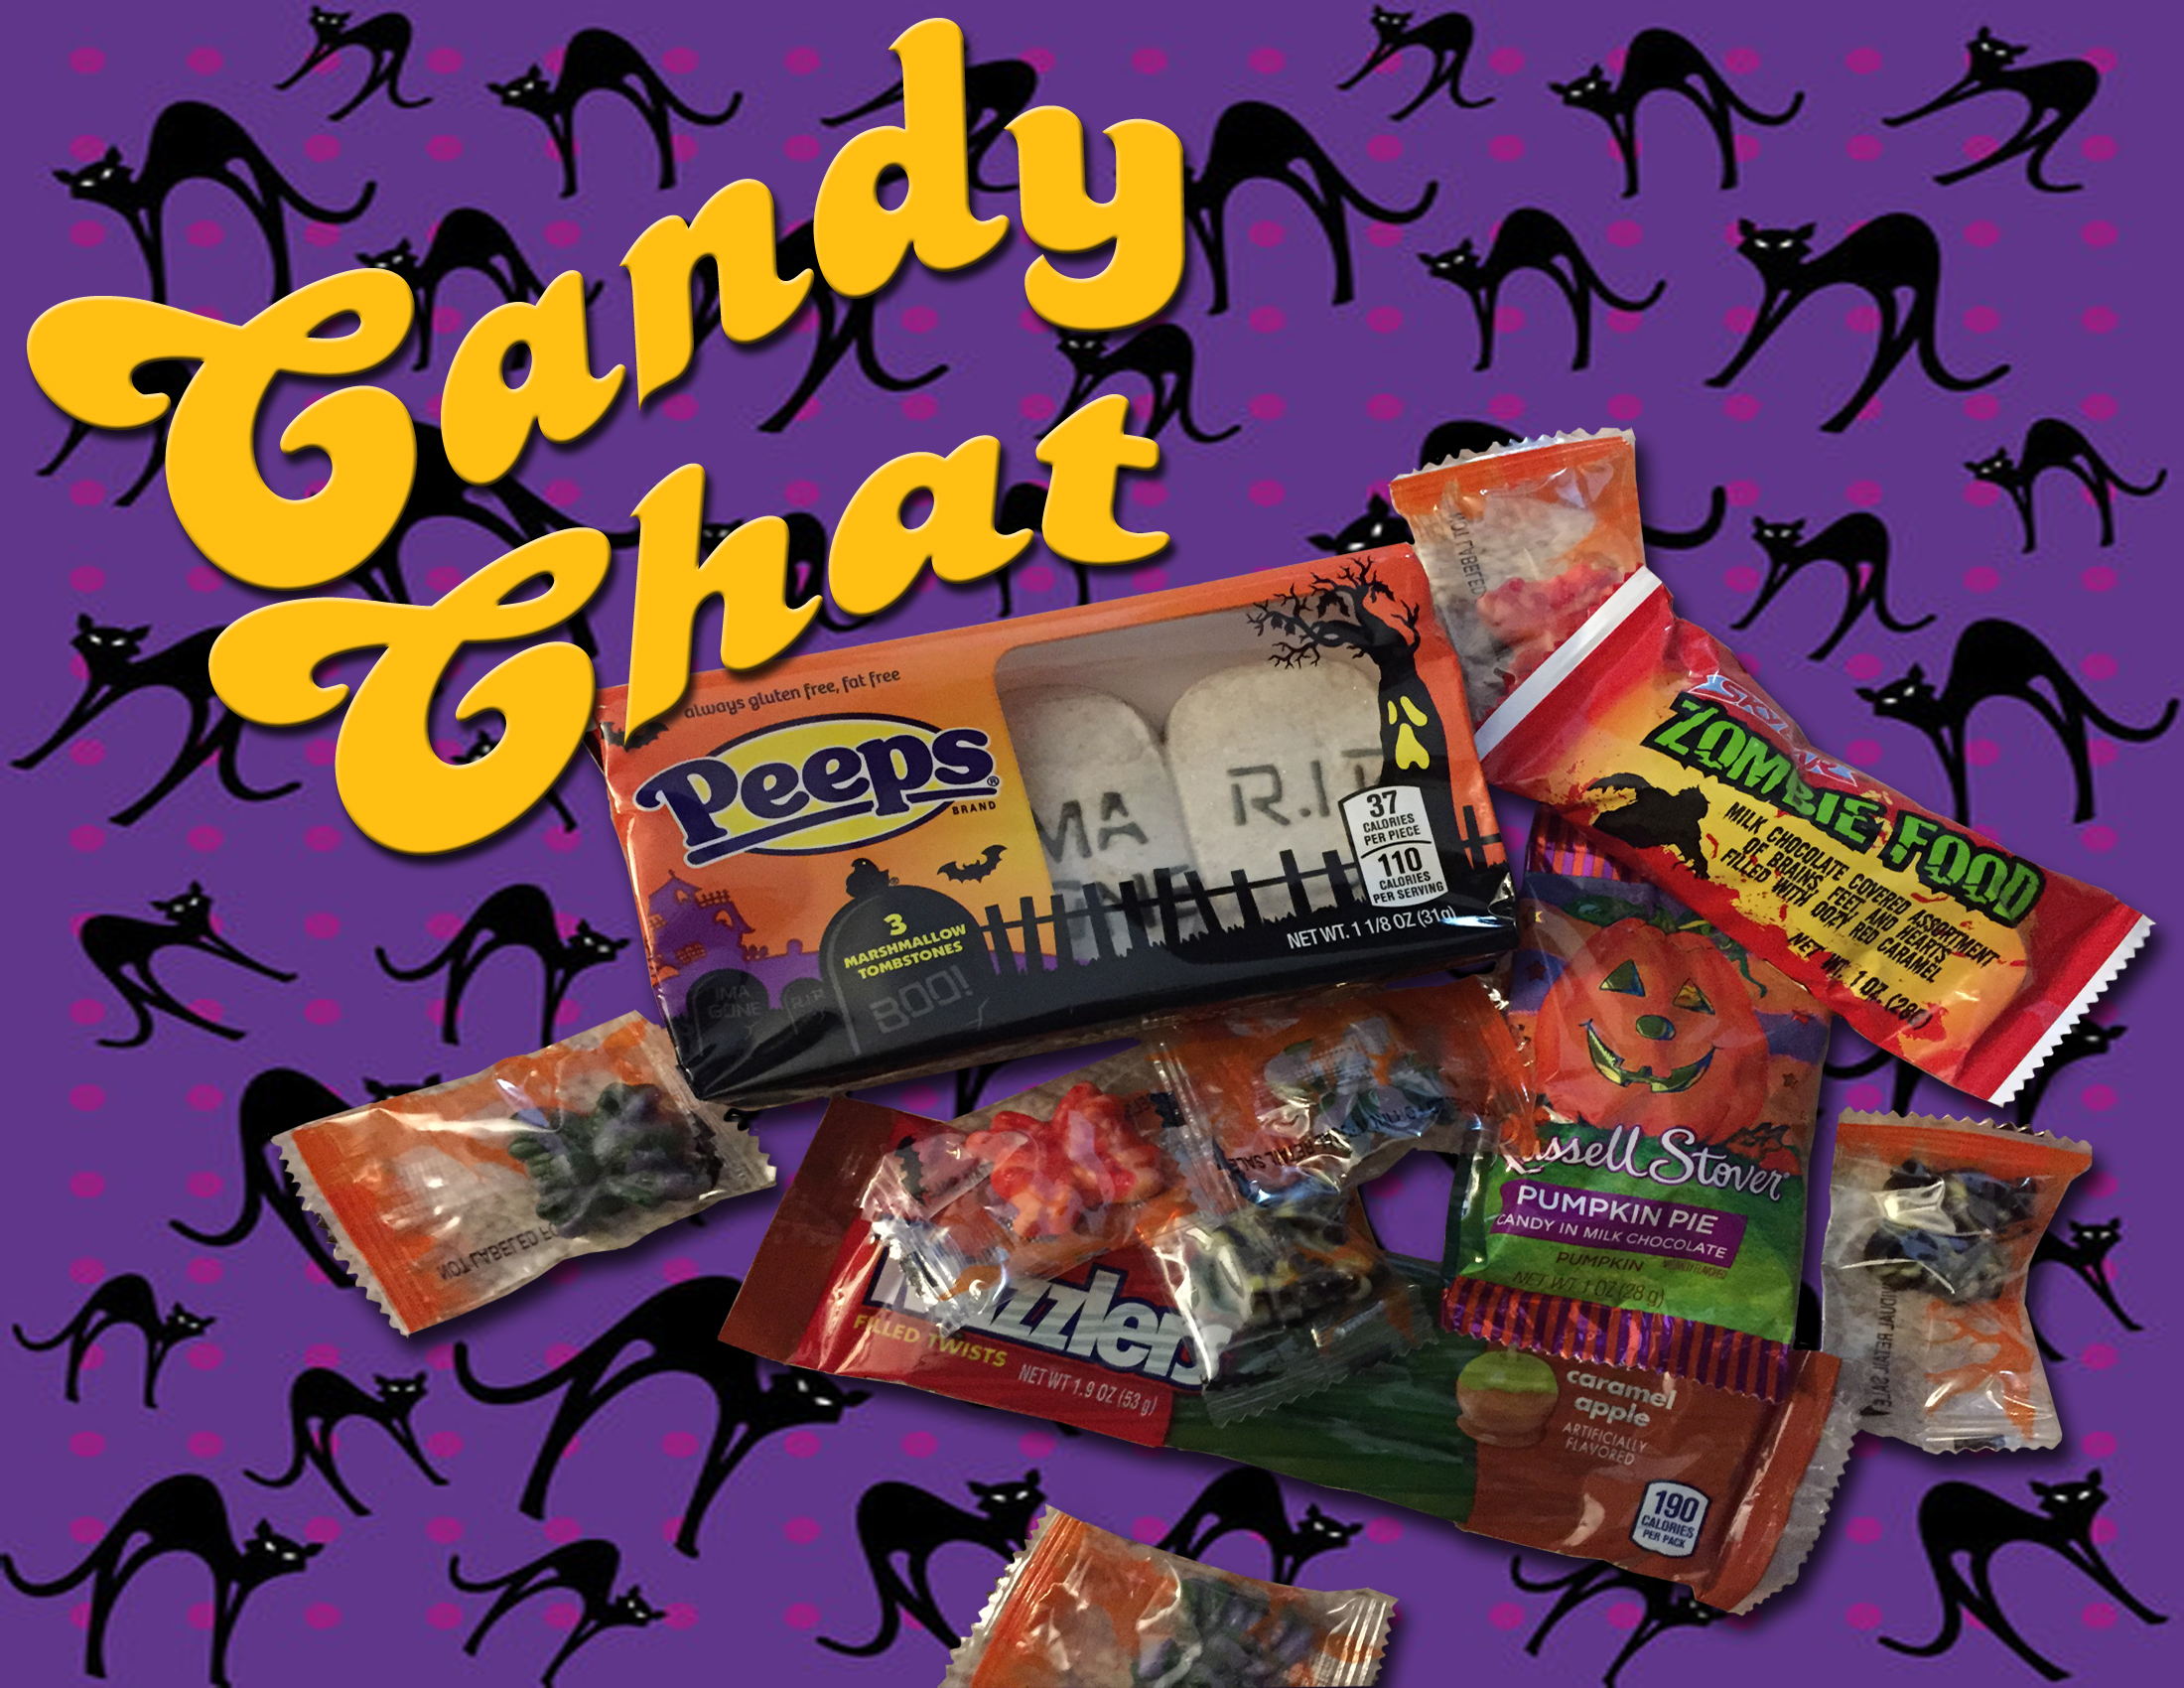 russell stover archives - candy chat